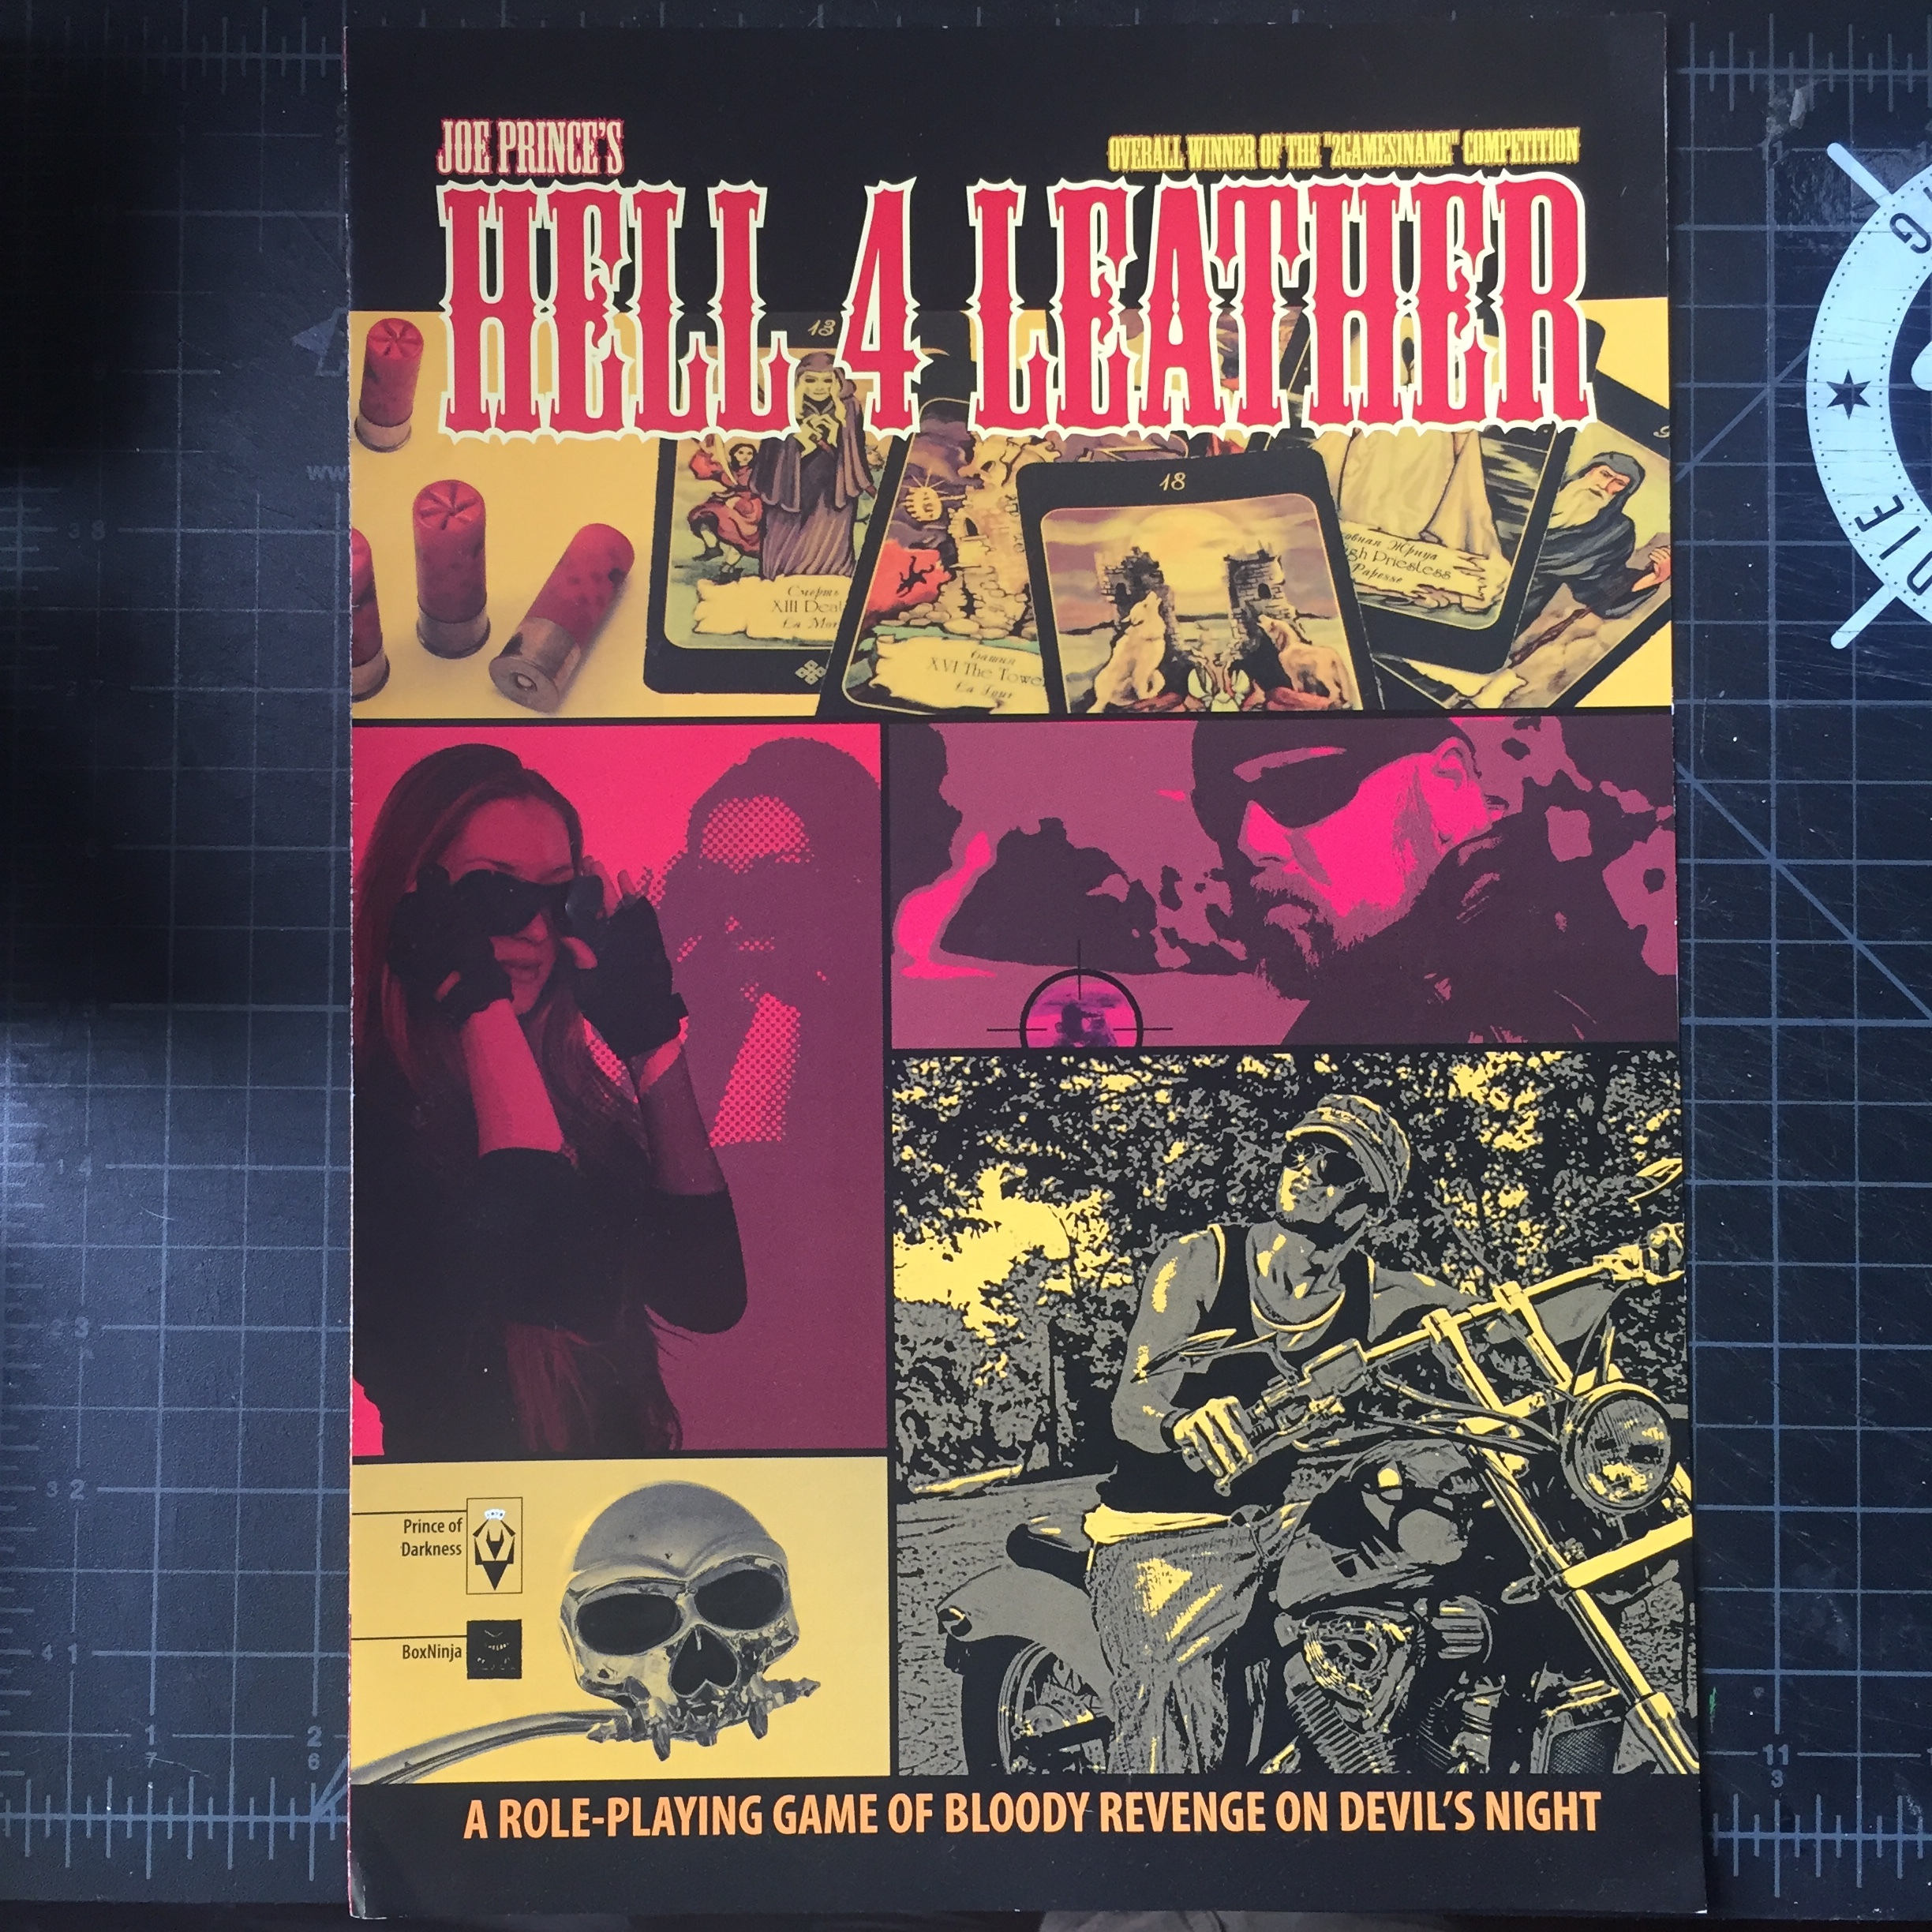 Hell 4 Leather - My friend Joe Prince's excellent tarot-driven horror game, a four-panel pamphlet.